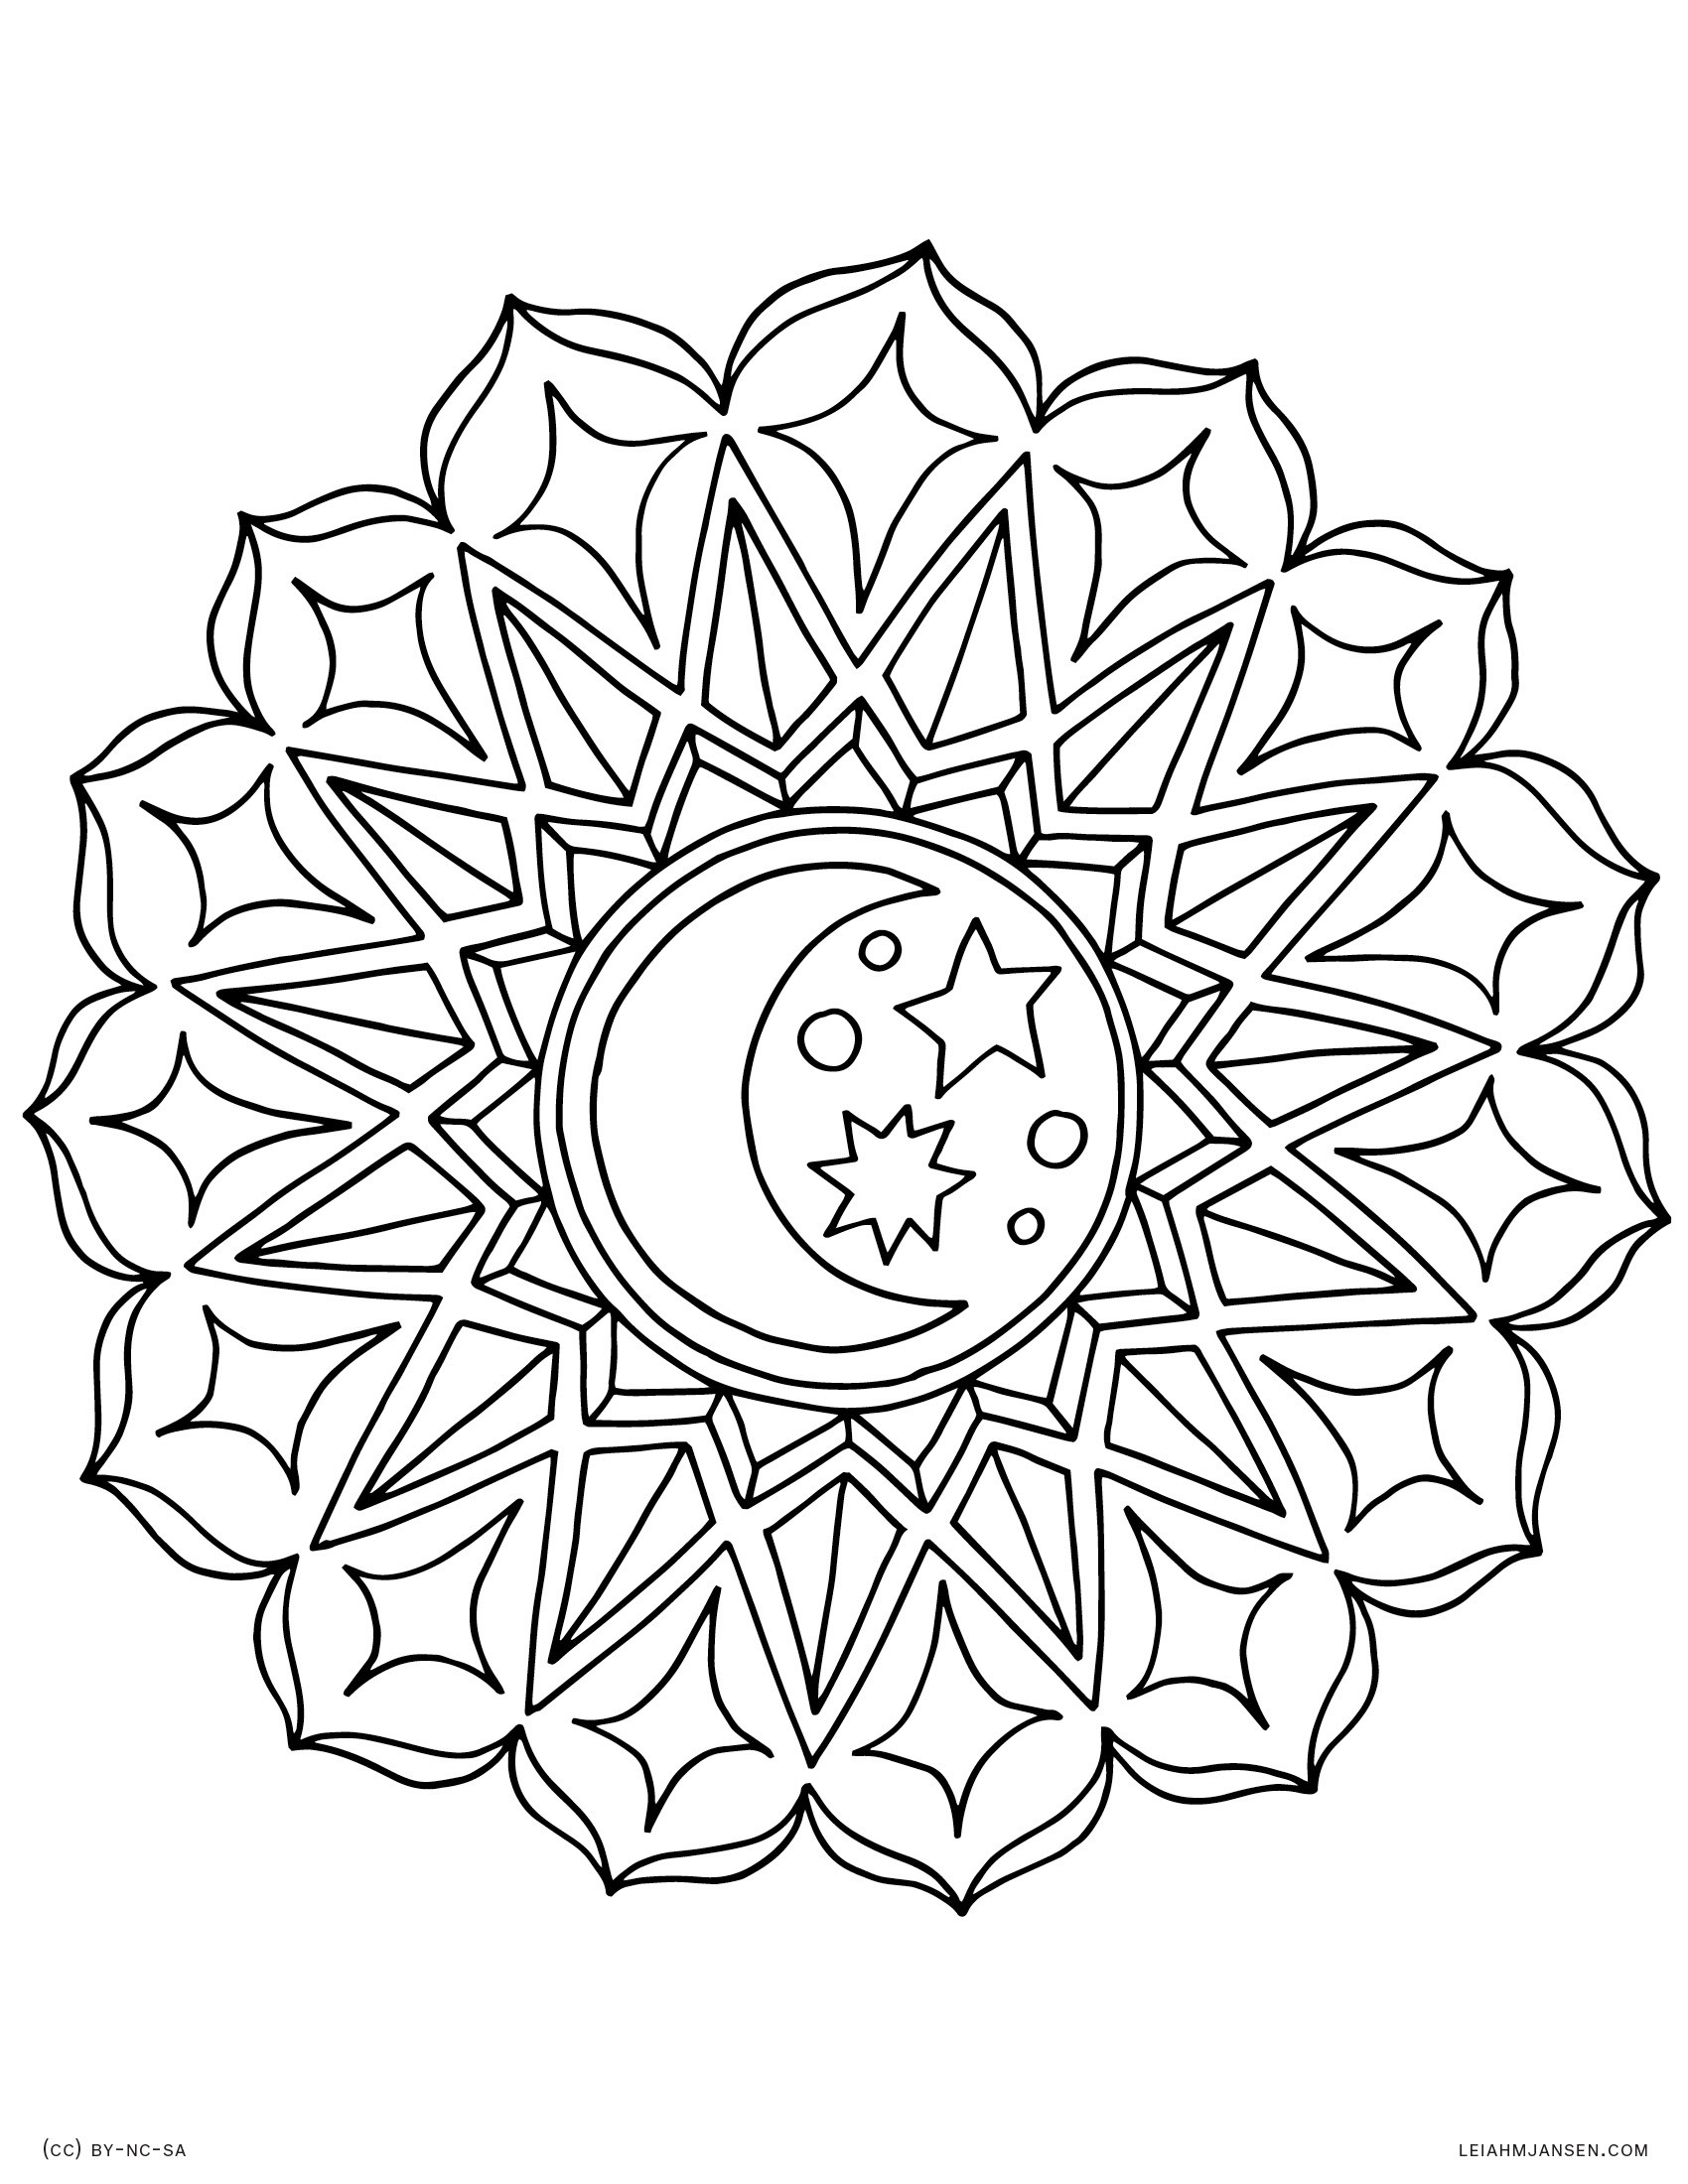 mandalas to color free cute anti stress mandala zen anti stress mandalas mandalas to free color